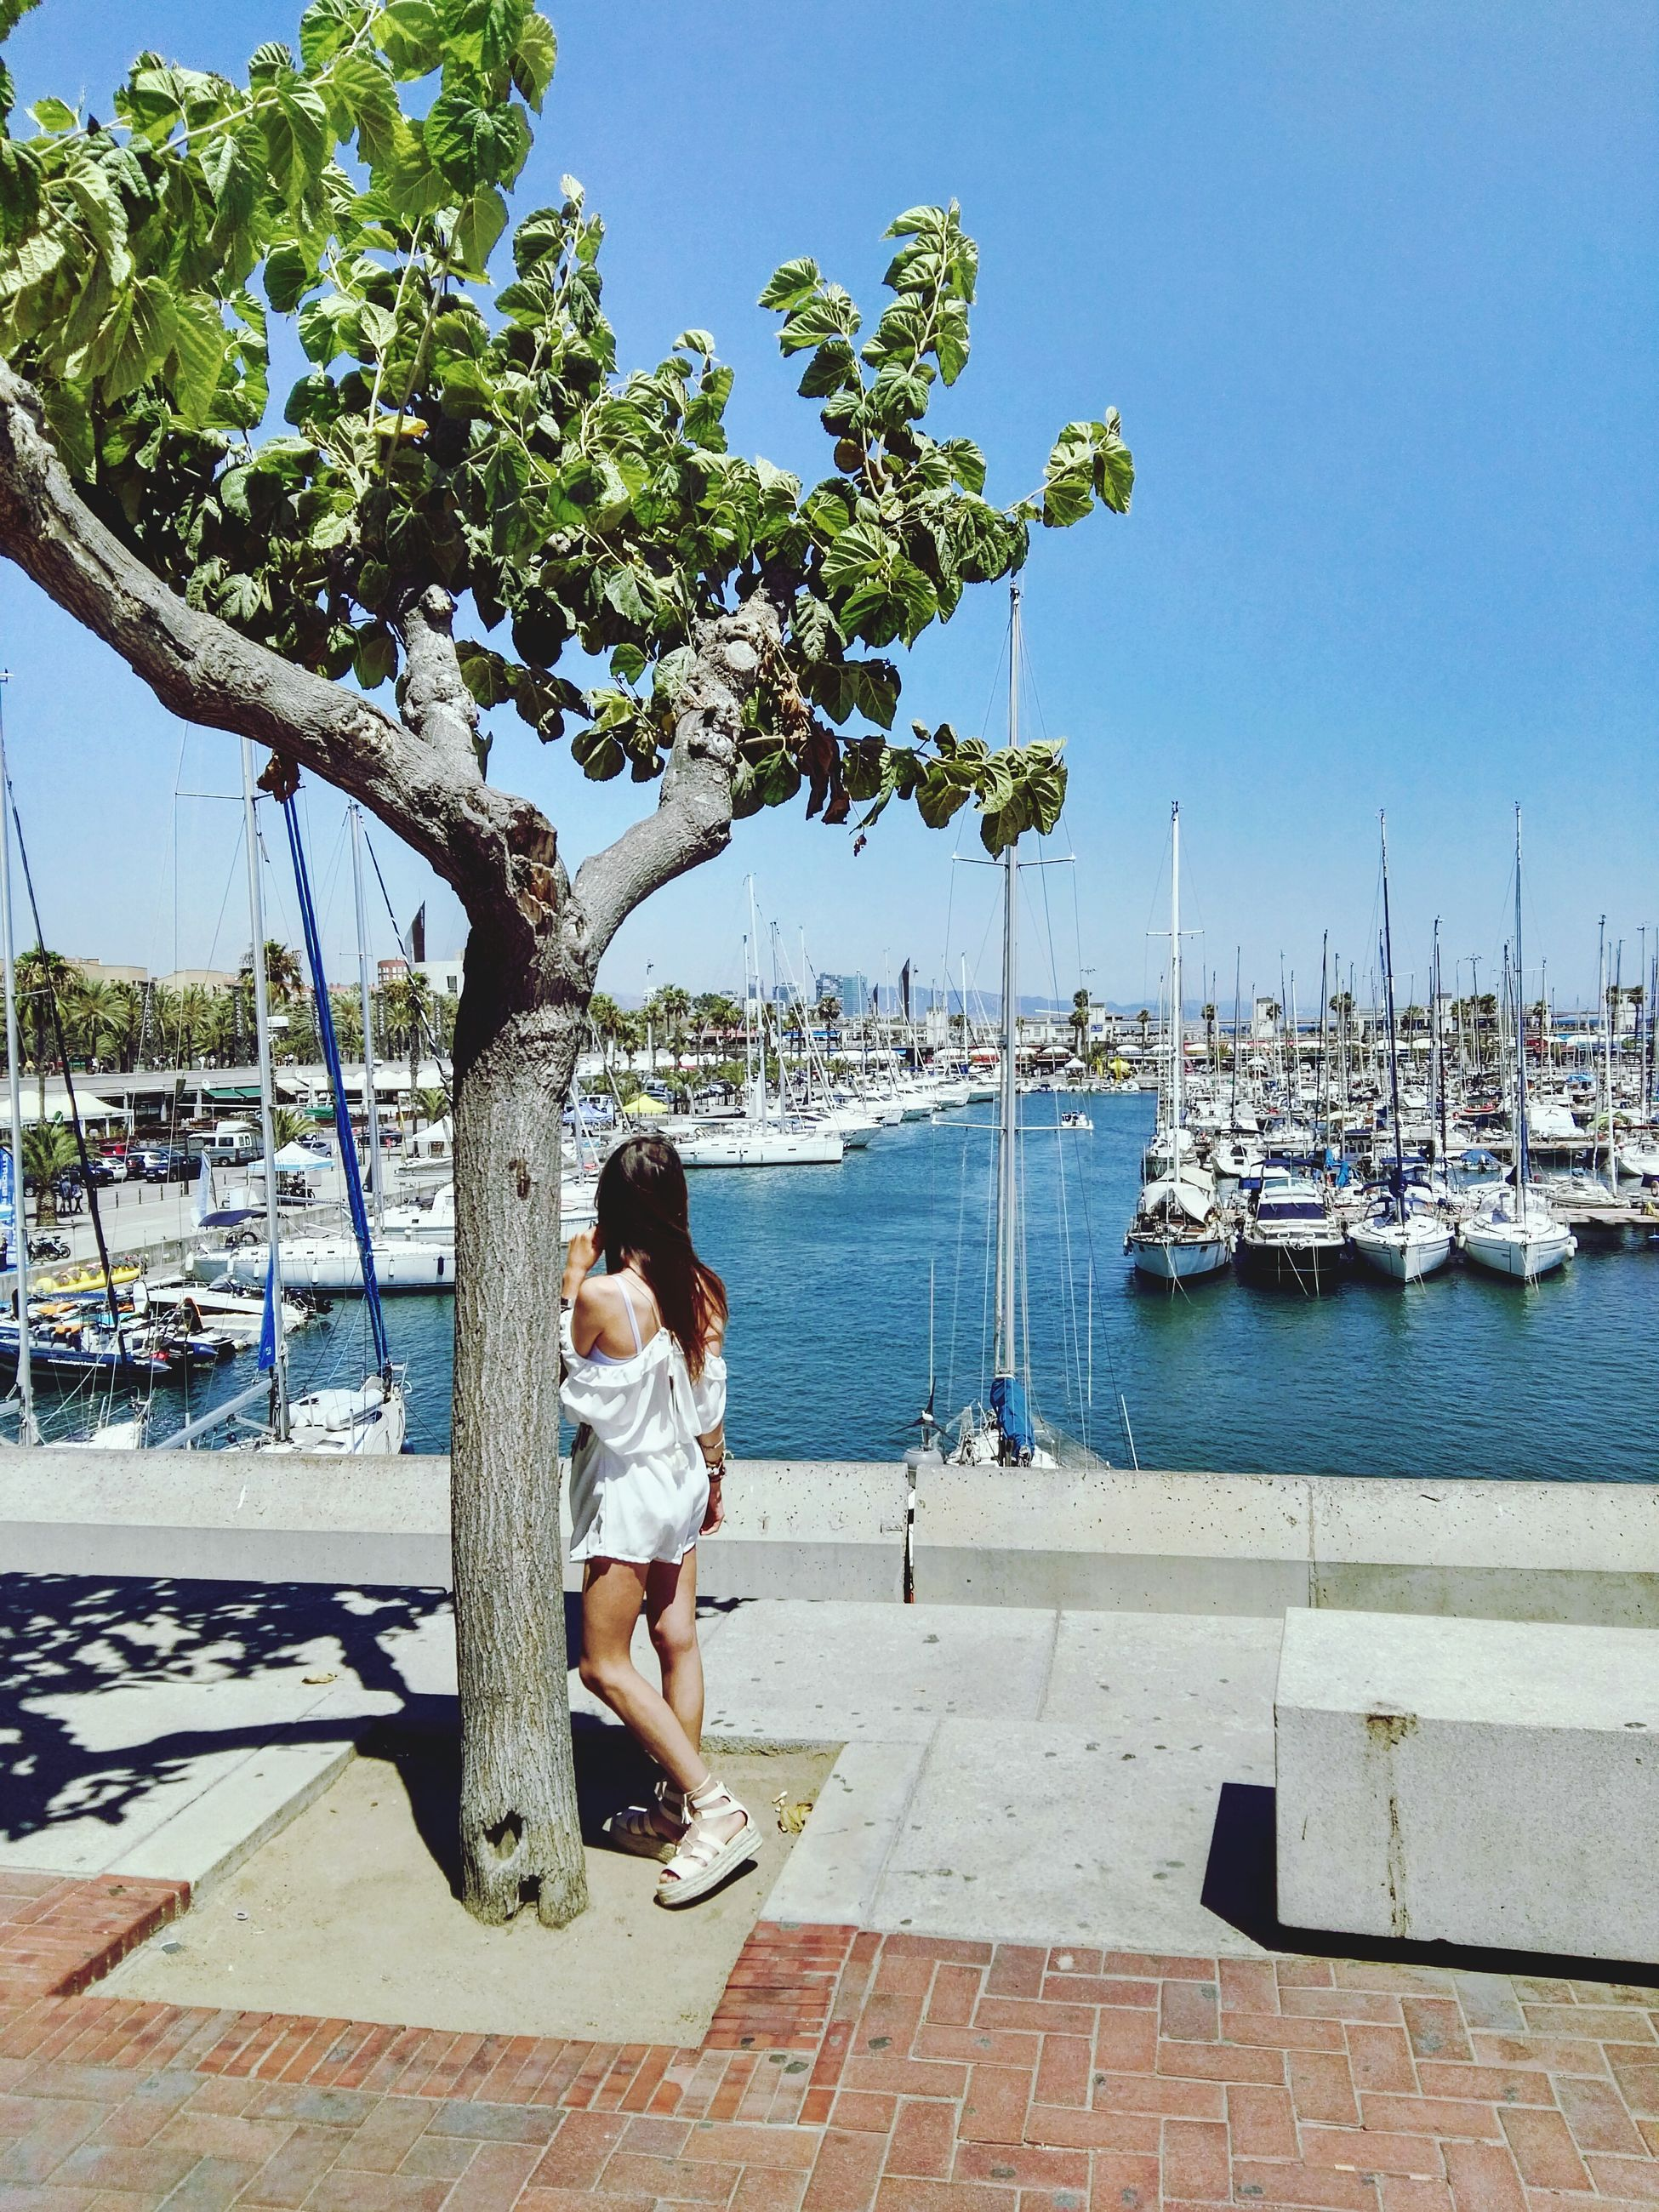 tree, full length, transportation, casual clothing, childhood, lifestyles, nautical vessel, leisure activity, mode of transport, relaxation, sitting, clear sky, water, day, summer, sky, innocence, promenade